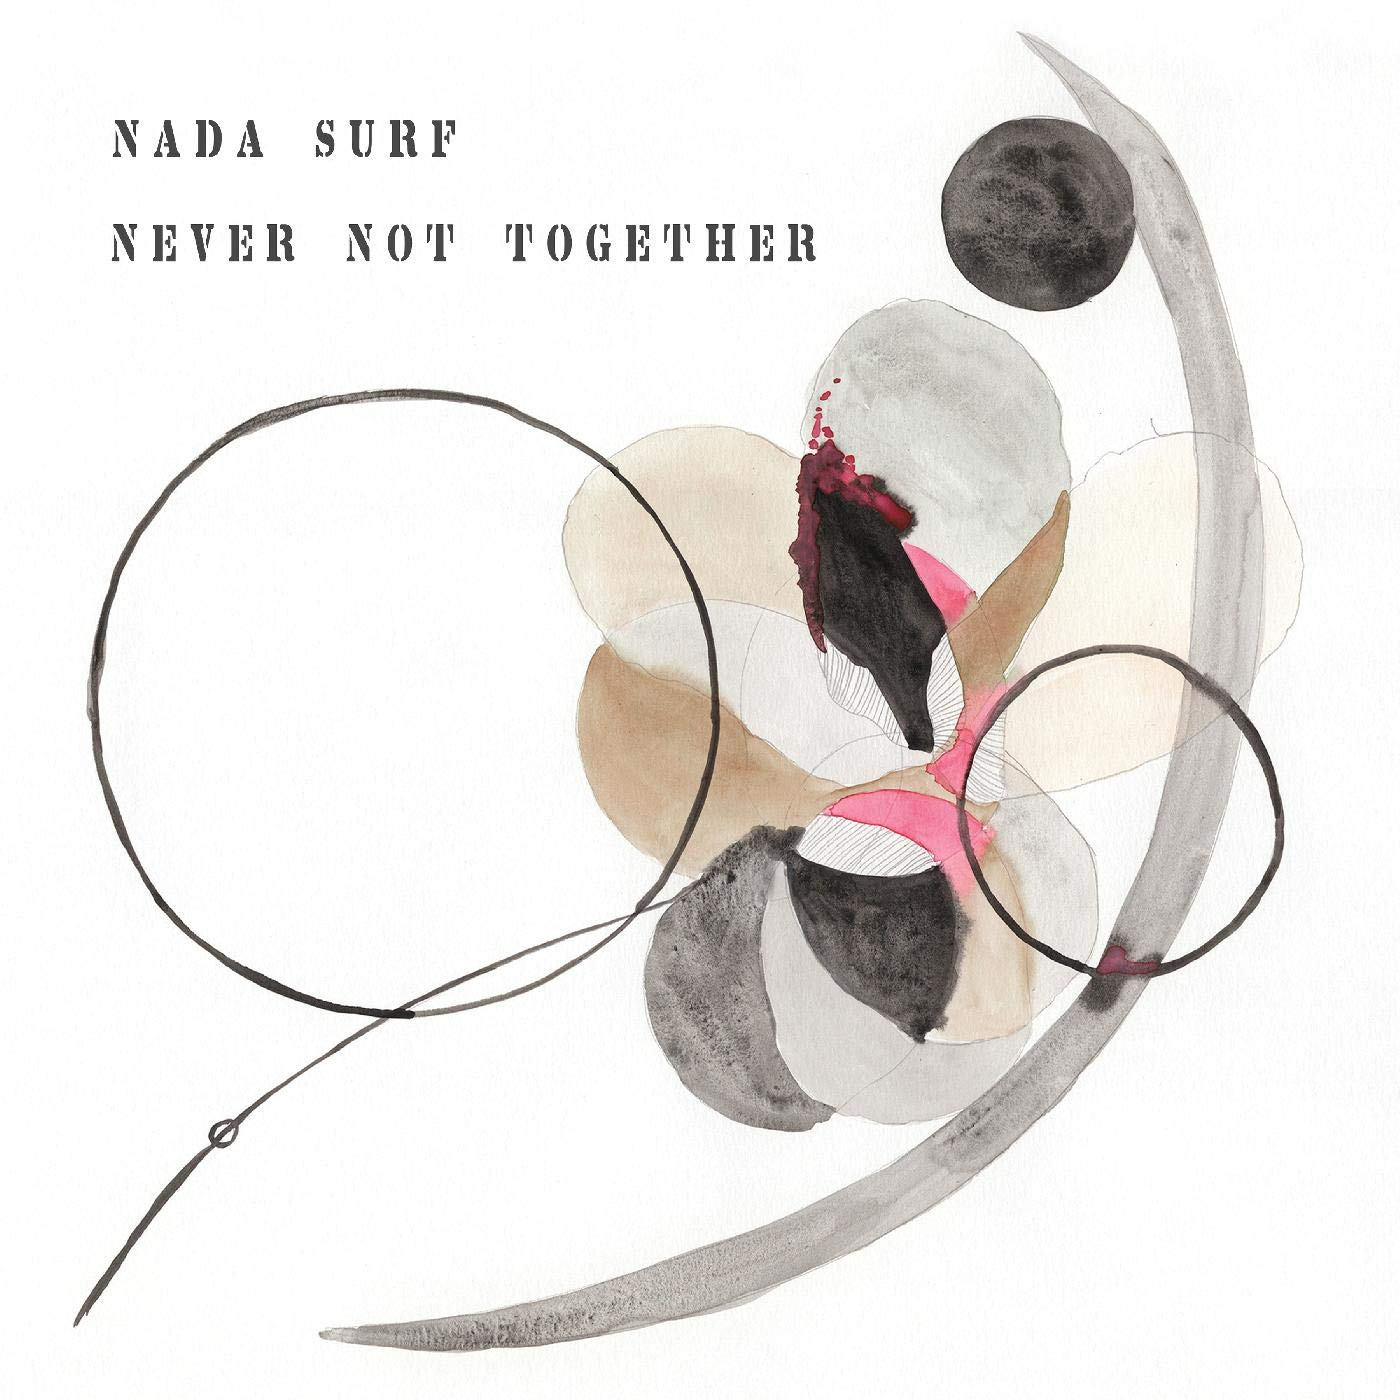 nada surf, never not together